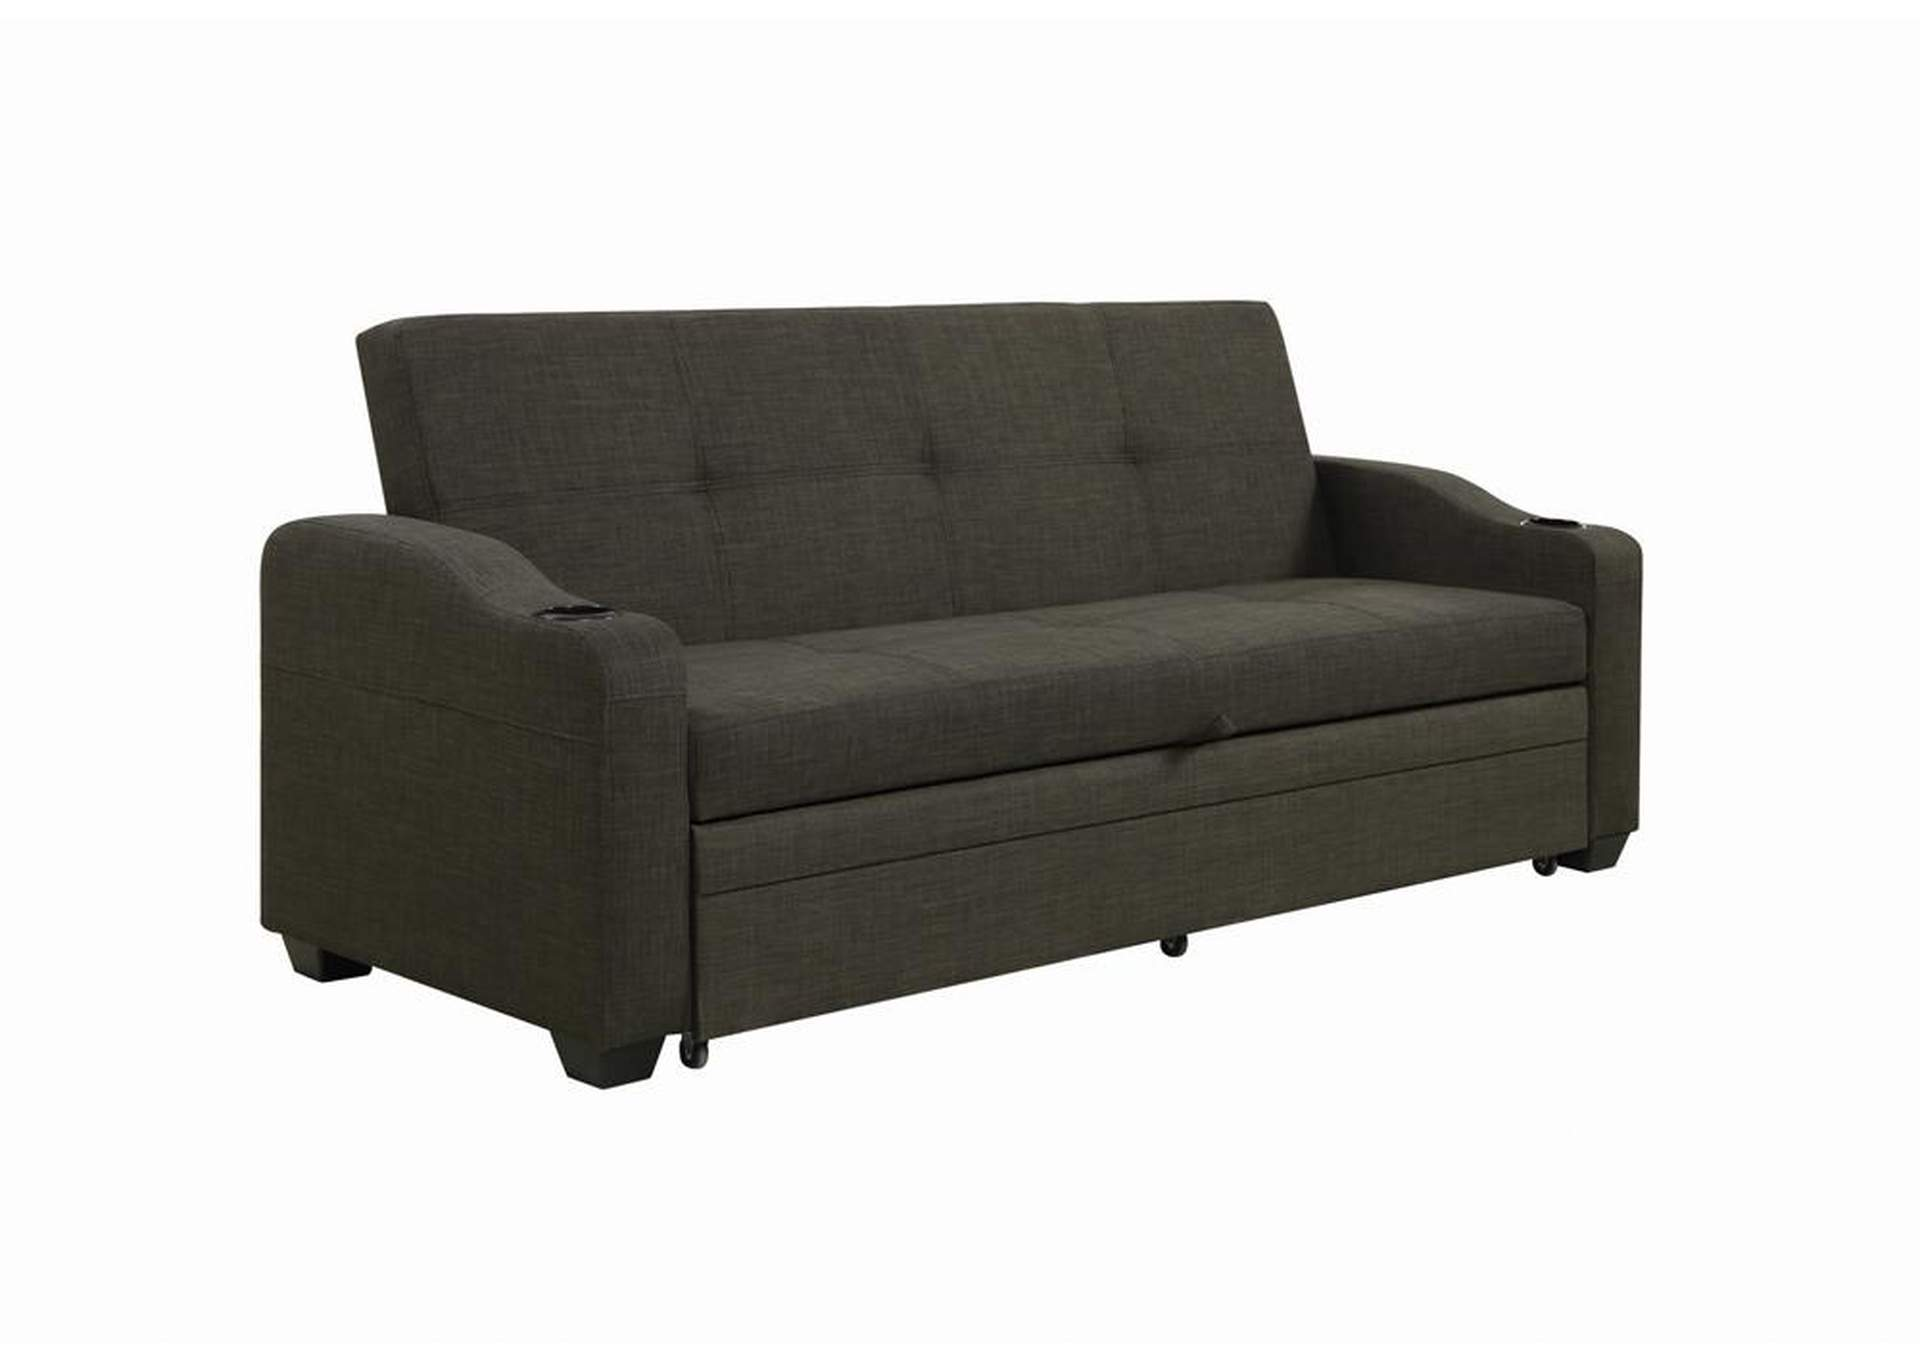 Excellent Ideal Furniture San Antonio West Charcoal Black Sofa Bed Ibusinesslaw Wood Chair Design Ideas Ibusinesslaworg